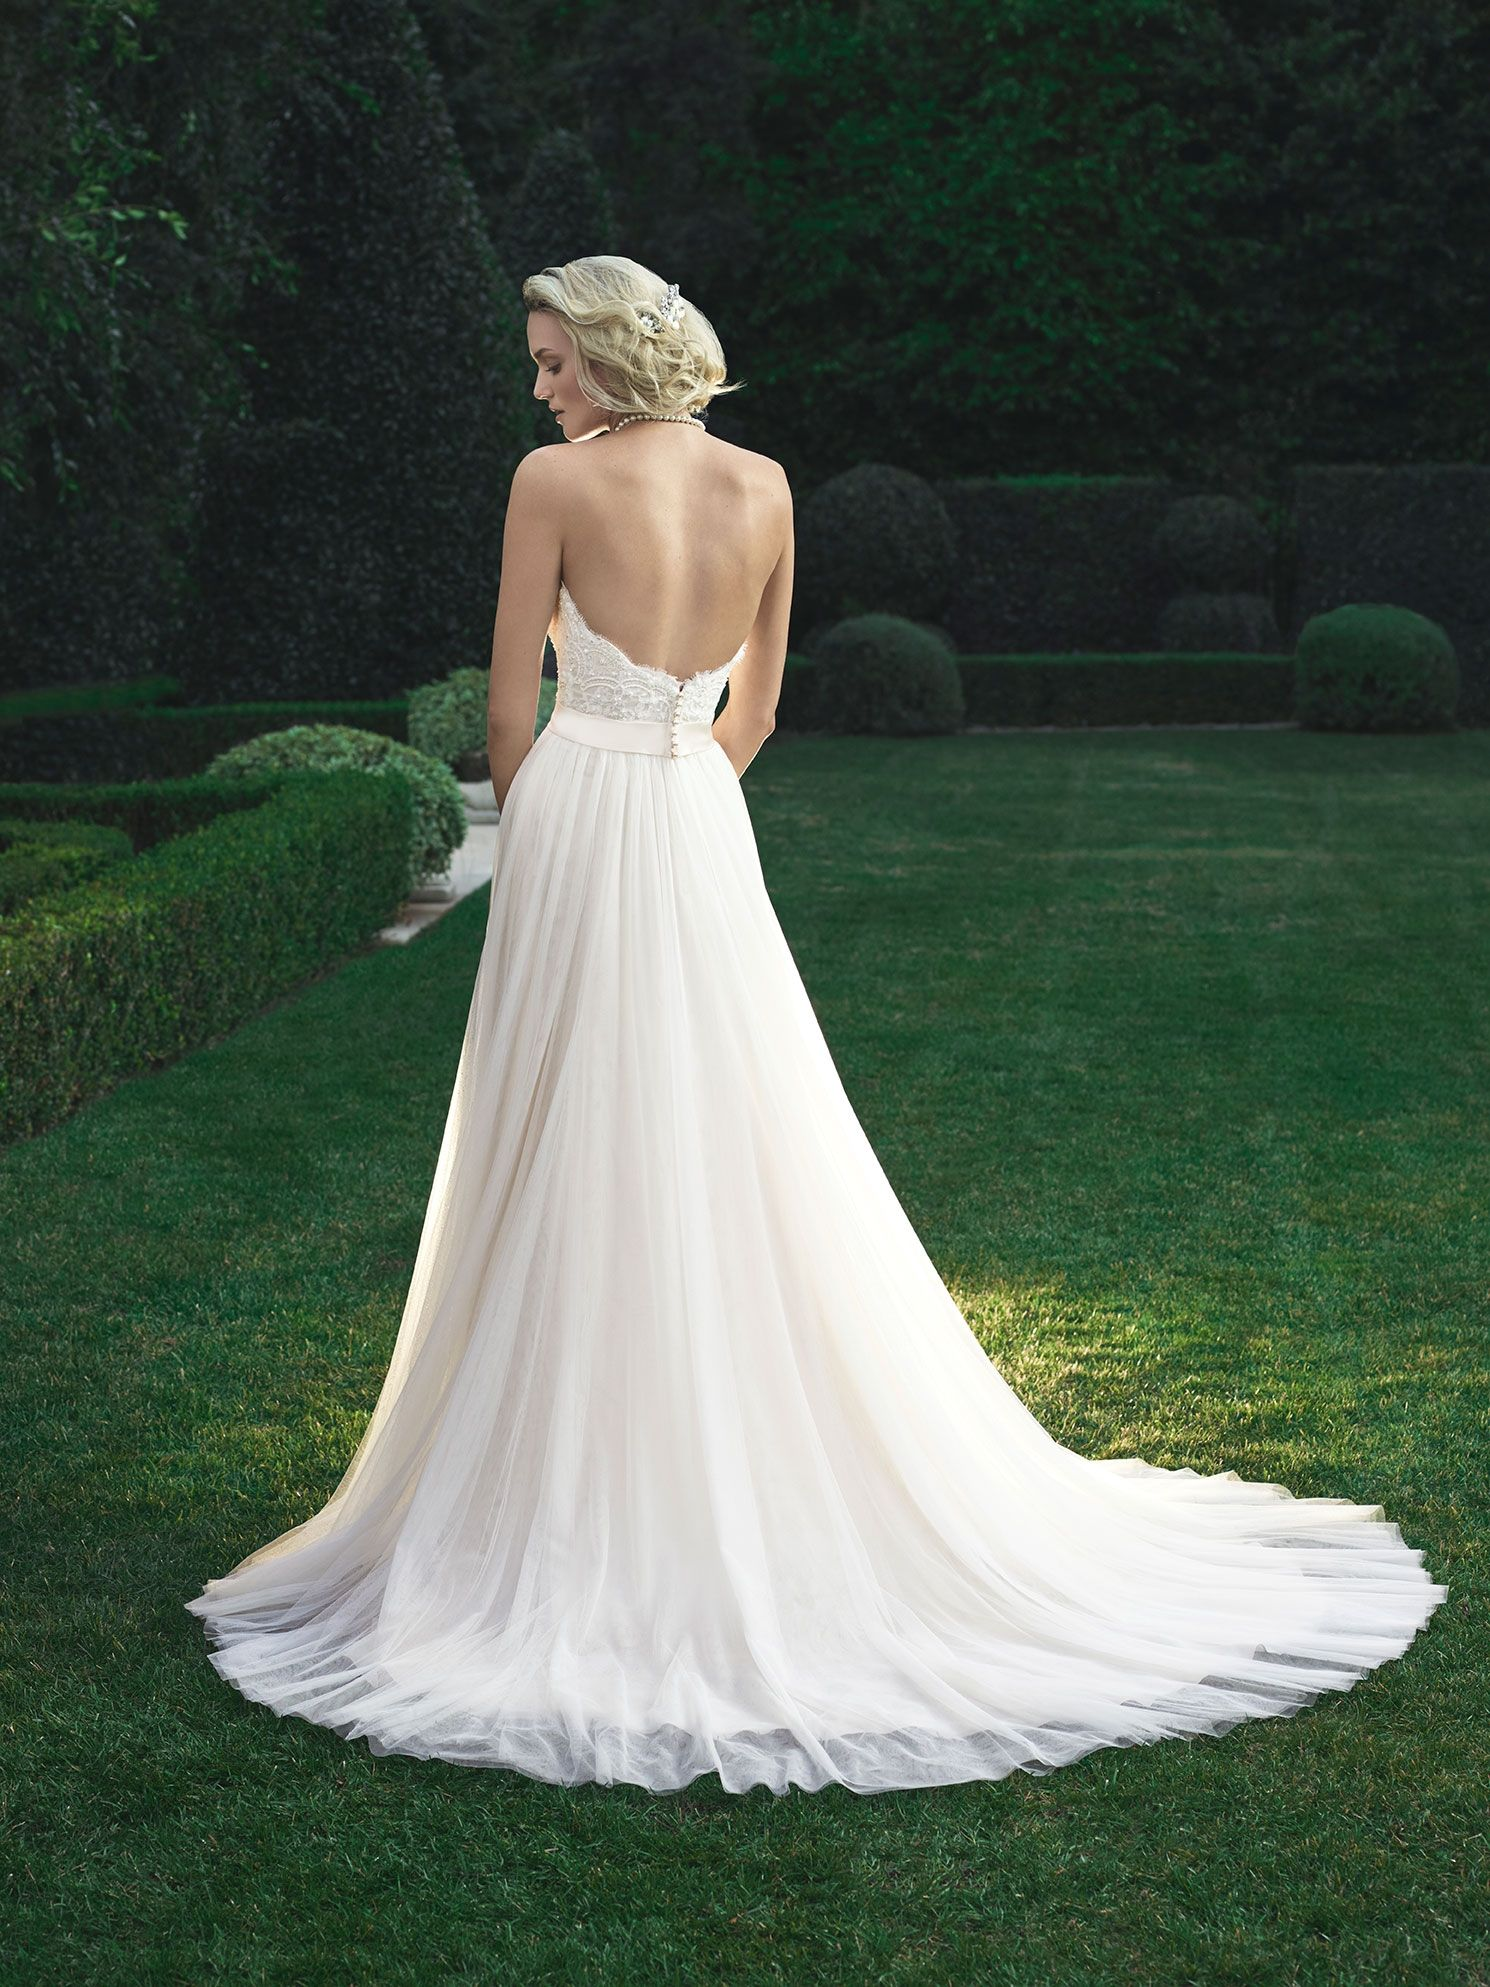 Baby Doll Silhouette Shaped Gown Made Of A Soft Tulle With A